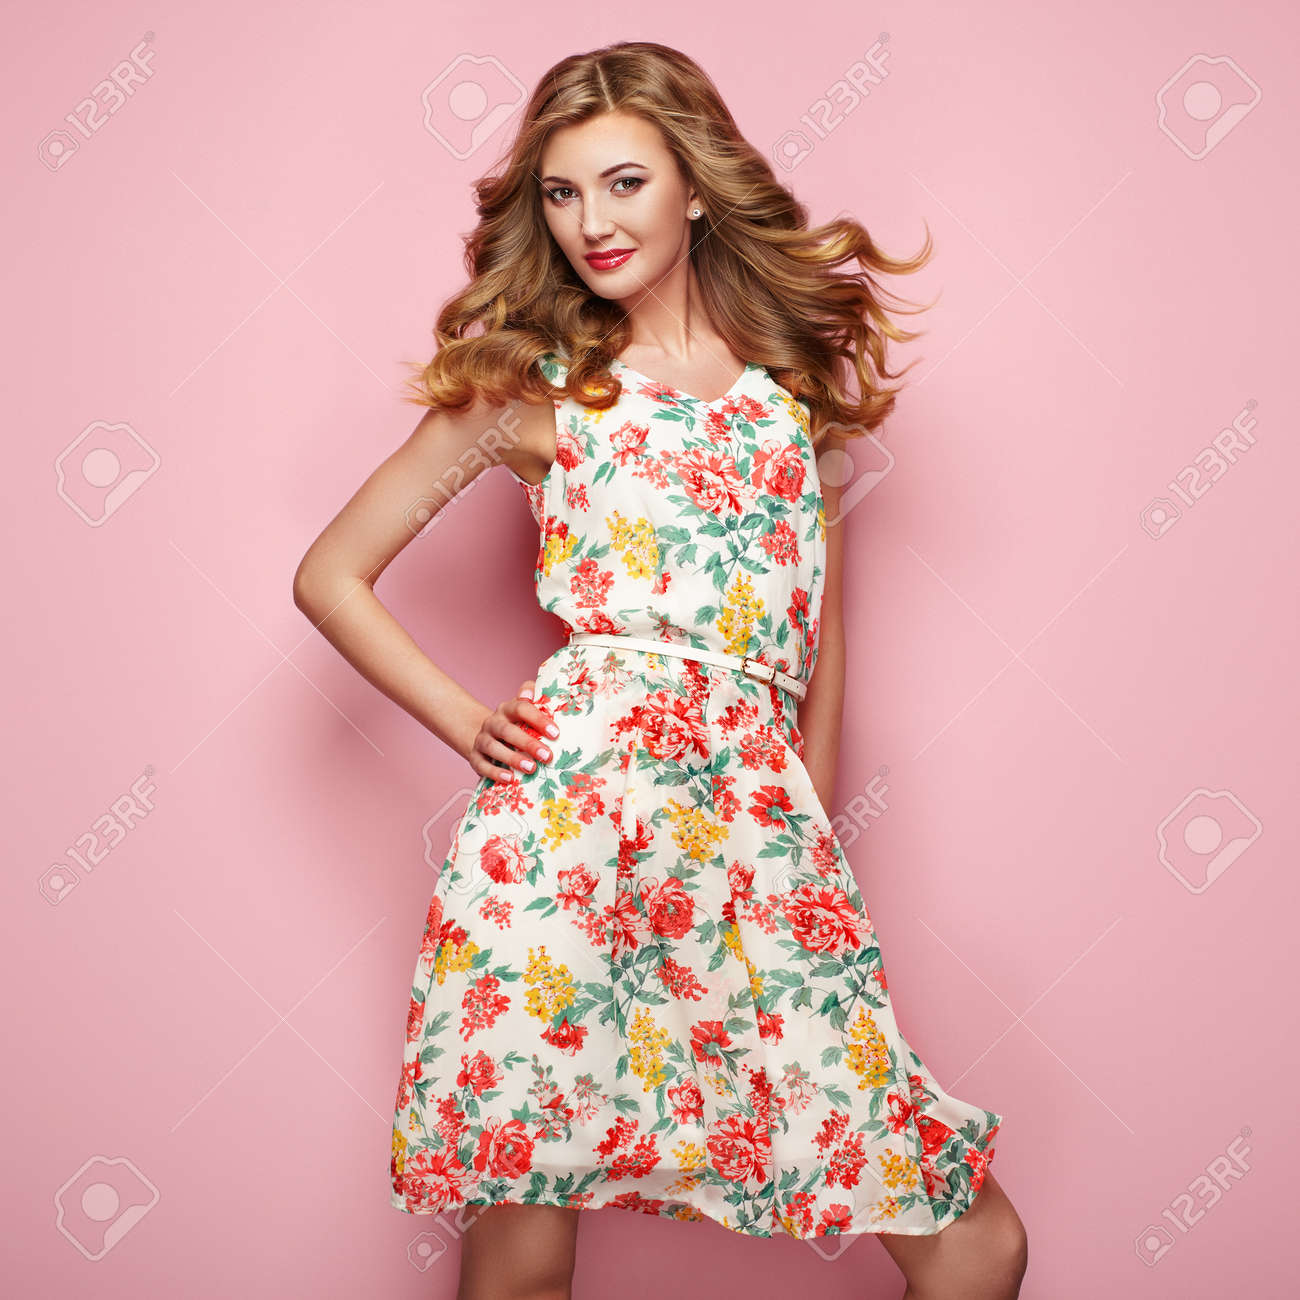 26ef244571c Blonde young woman in floral spring summer dress. Girl posing on a pink  background.